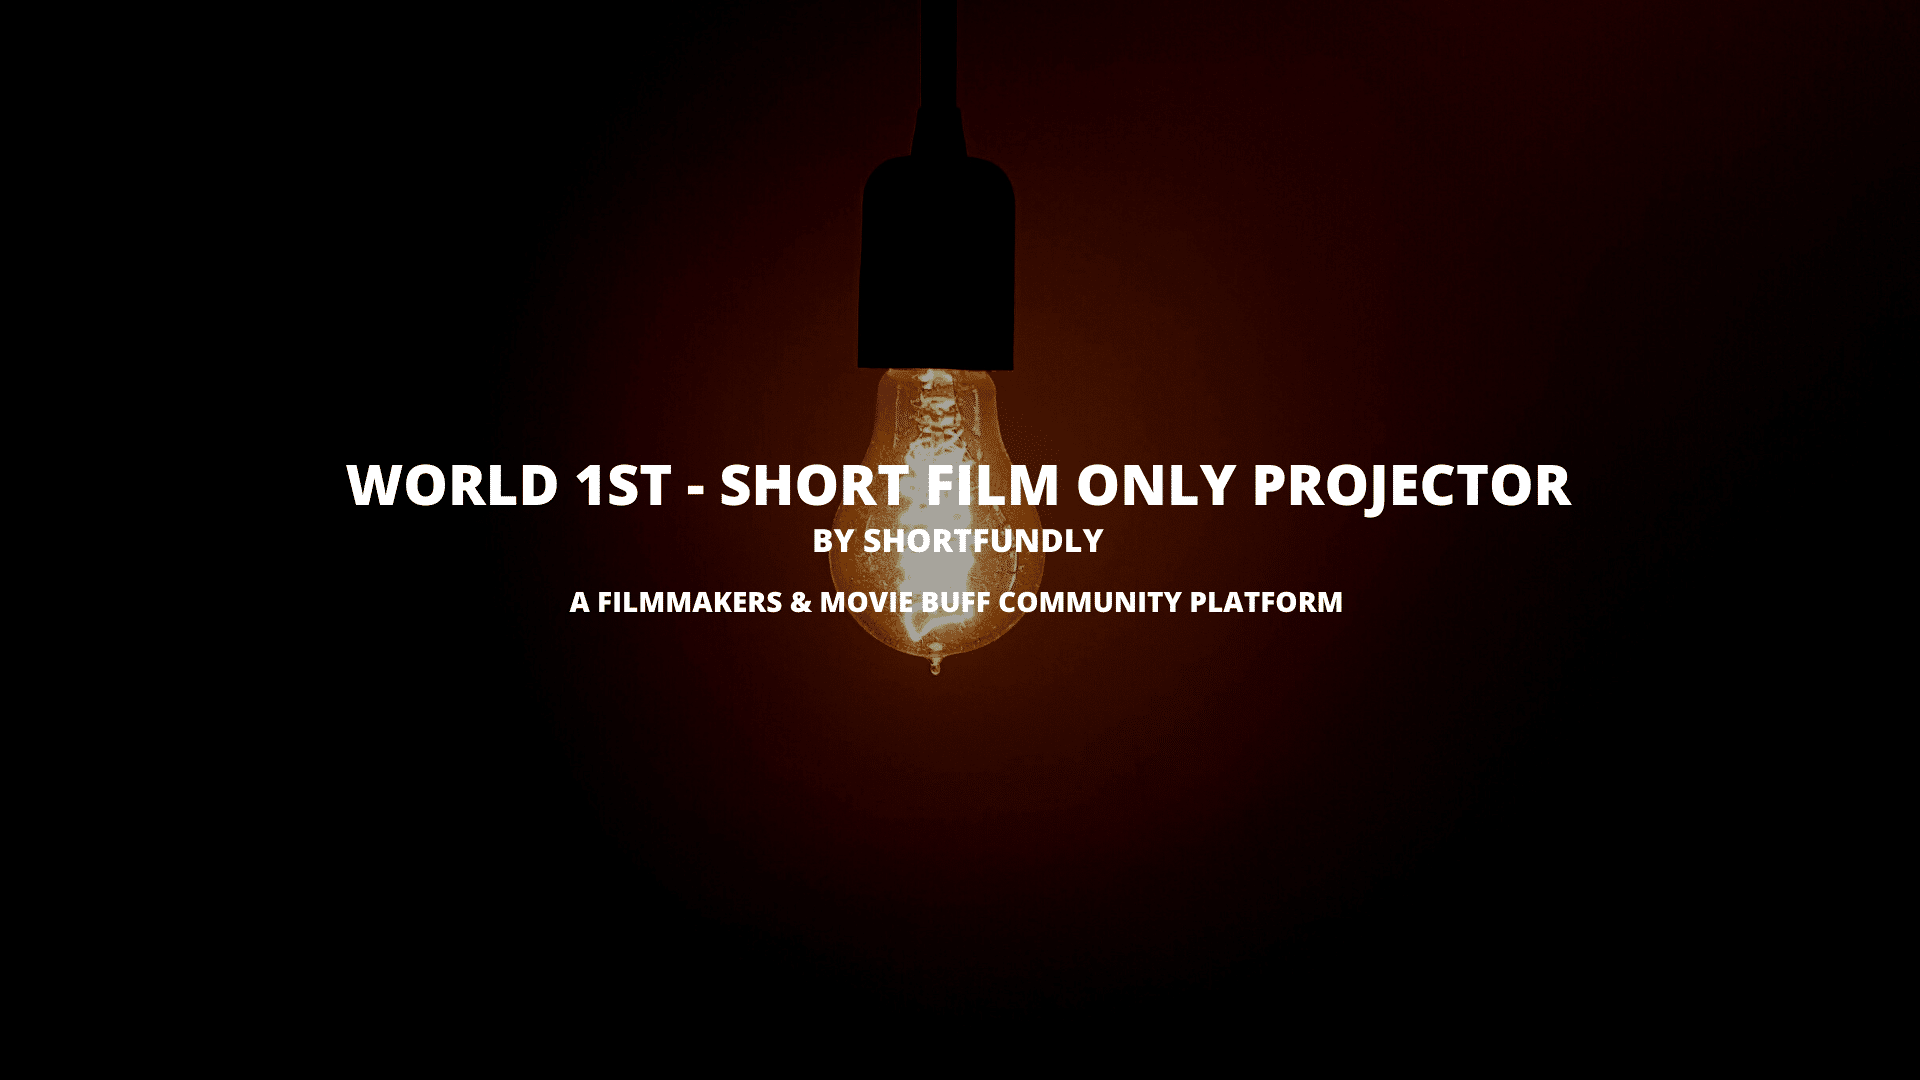 Short film Only Projector